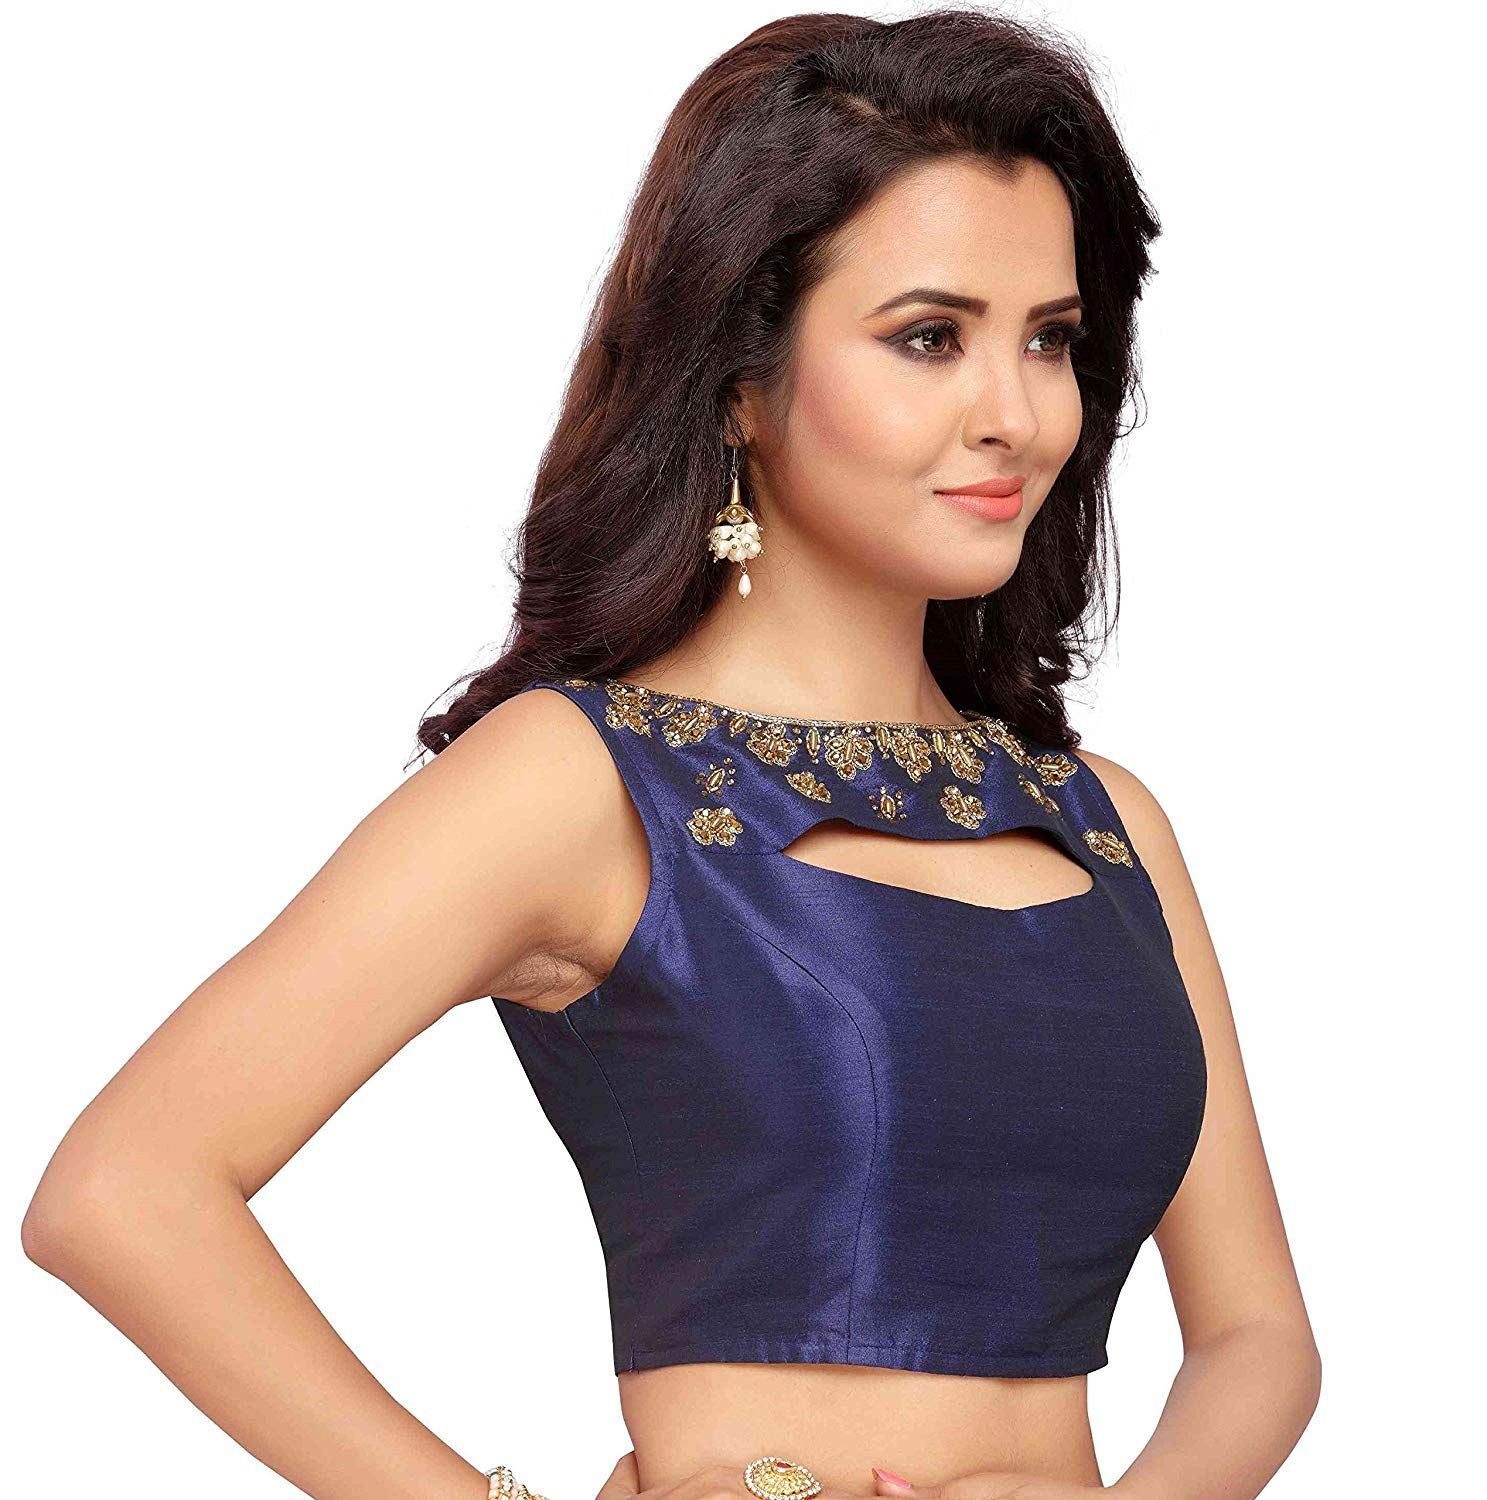 d5849cf83c9c4 STUDIO SHRINGAAR WOMEN S NAVY BLUE POLY RAW SILK EMBROIDERED READYMADE  SAREE BLOUSE  Amazon.in  Clothing   Accessories